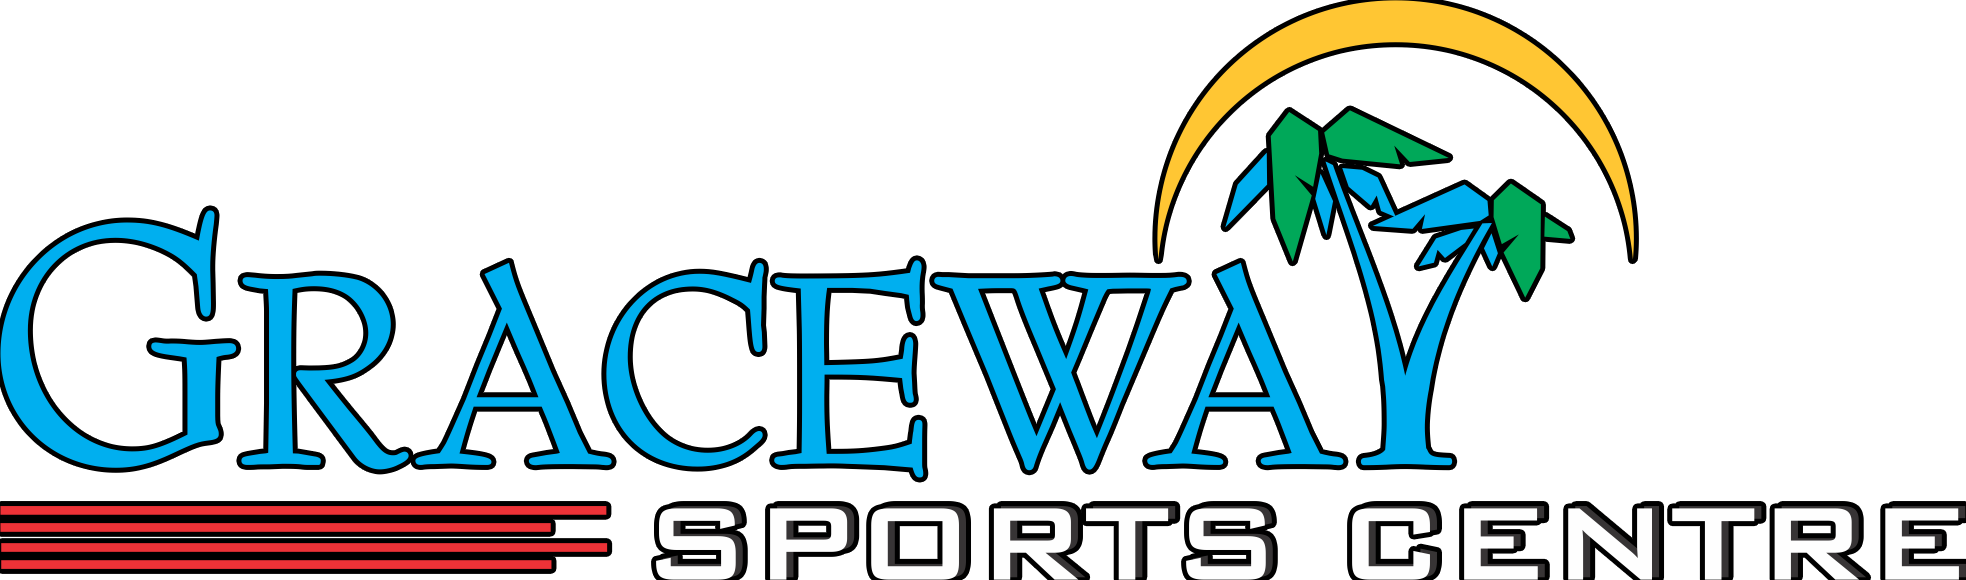 Workout Plans | Graceway Sports Center